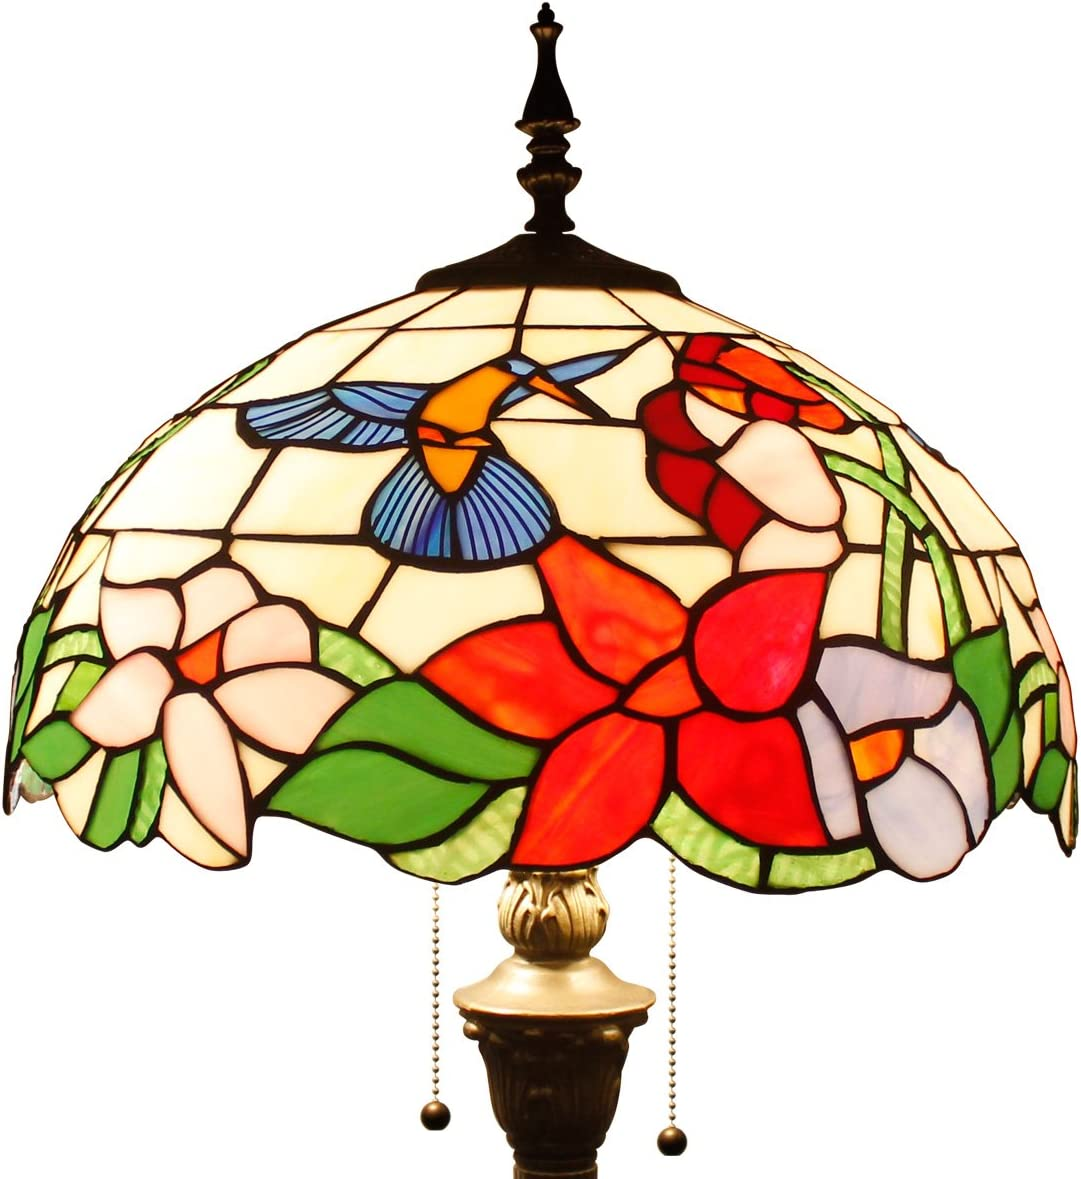 Tiffany Style Floor Standing Lamp Wide 16 Tall 64 Inch Stained Glass Hummingbird Design Shade 2E26 Antique Base for Bedroom Living Room Reading Lighting Table S101 WERFACTORY